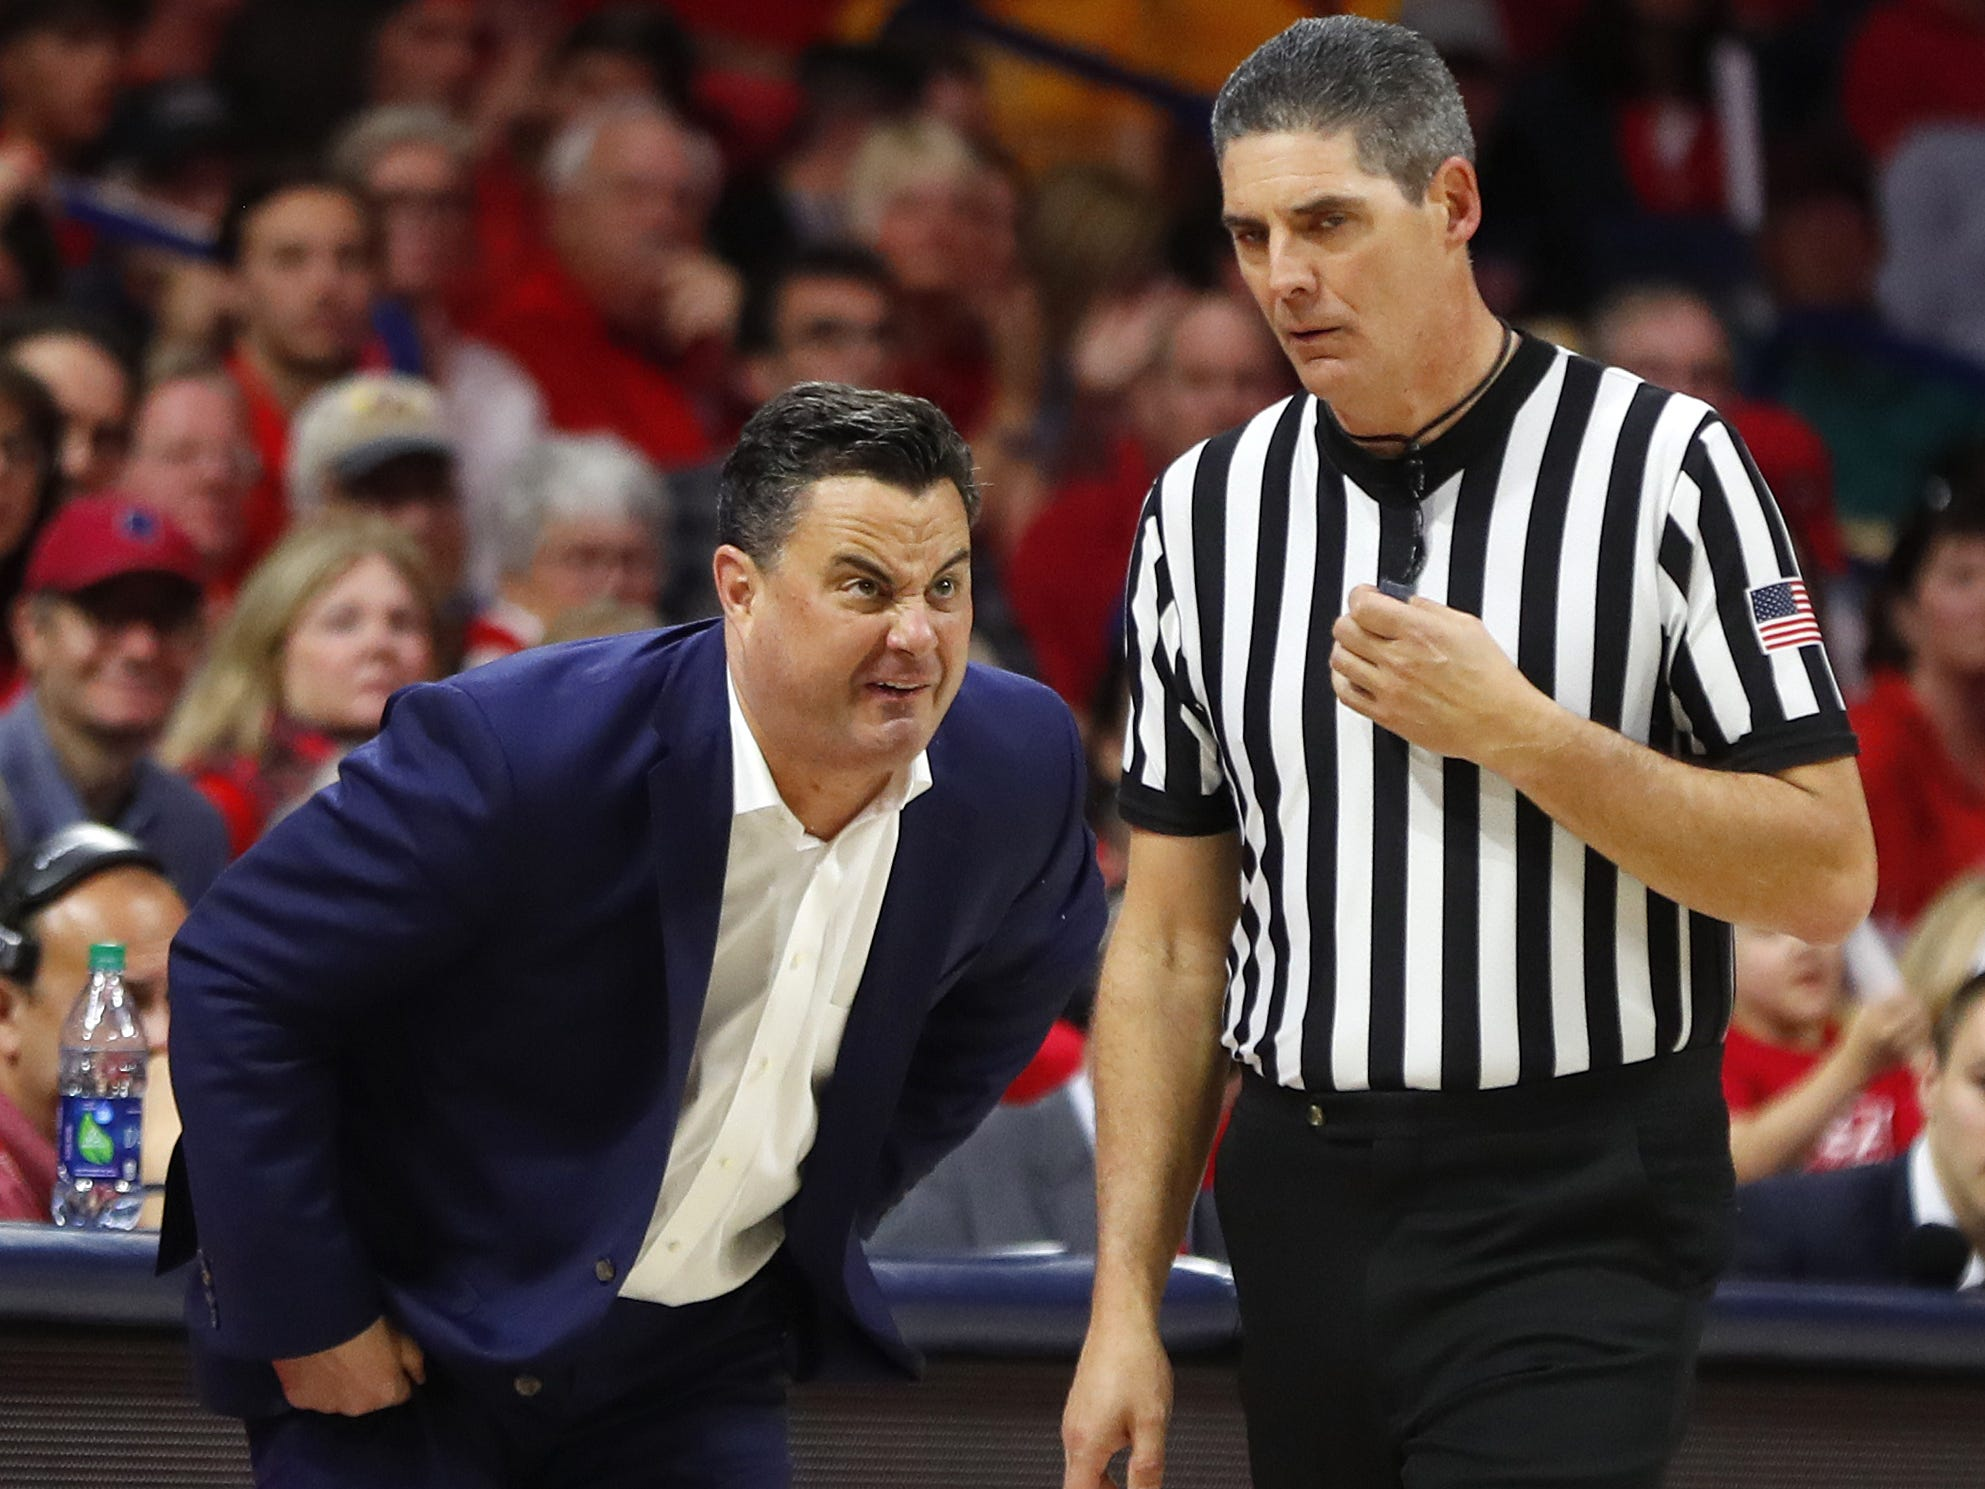 Arizona's head coach Sean Miller stares down an official after a no-call during the second half against ASU at the McKale Memorial Center in Tucson, Ariz. on March 9, 2019.